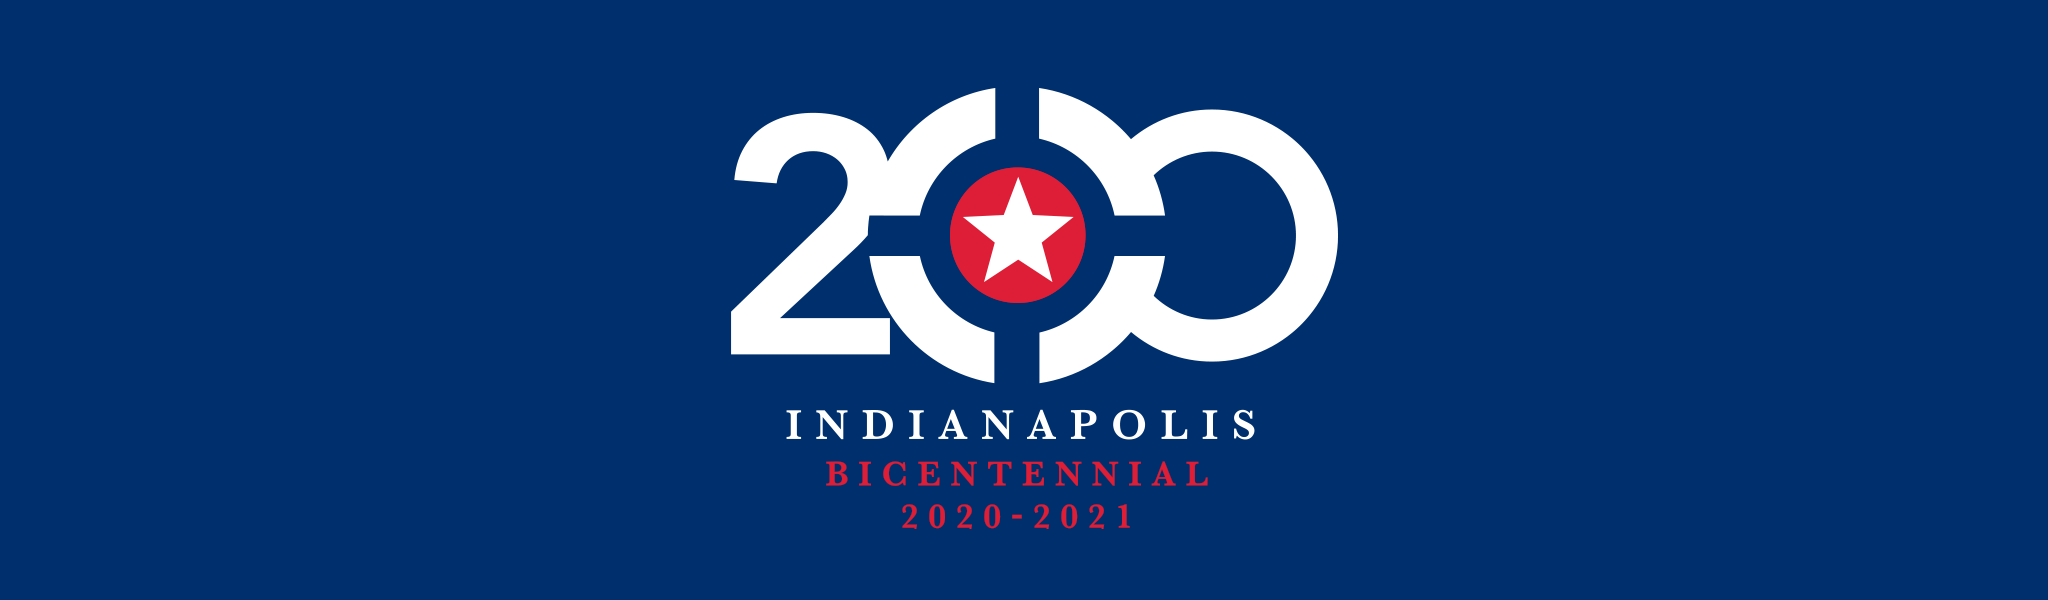 Indy Bicentennial Collection